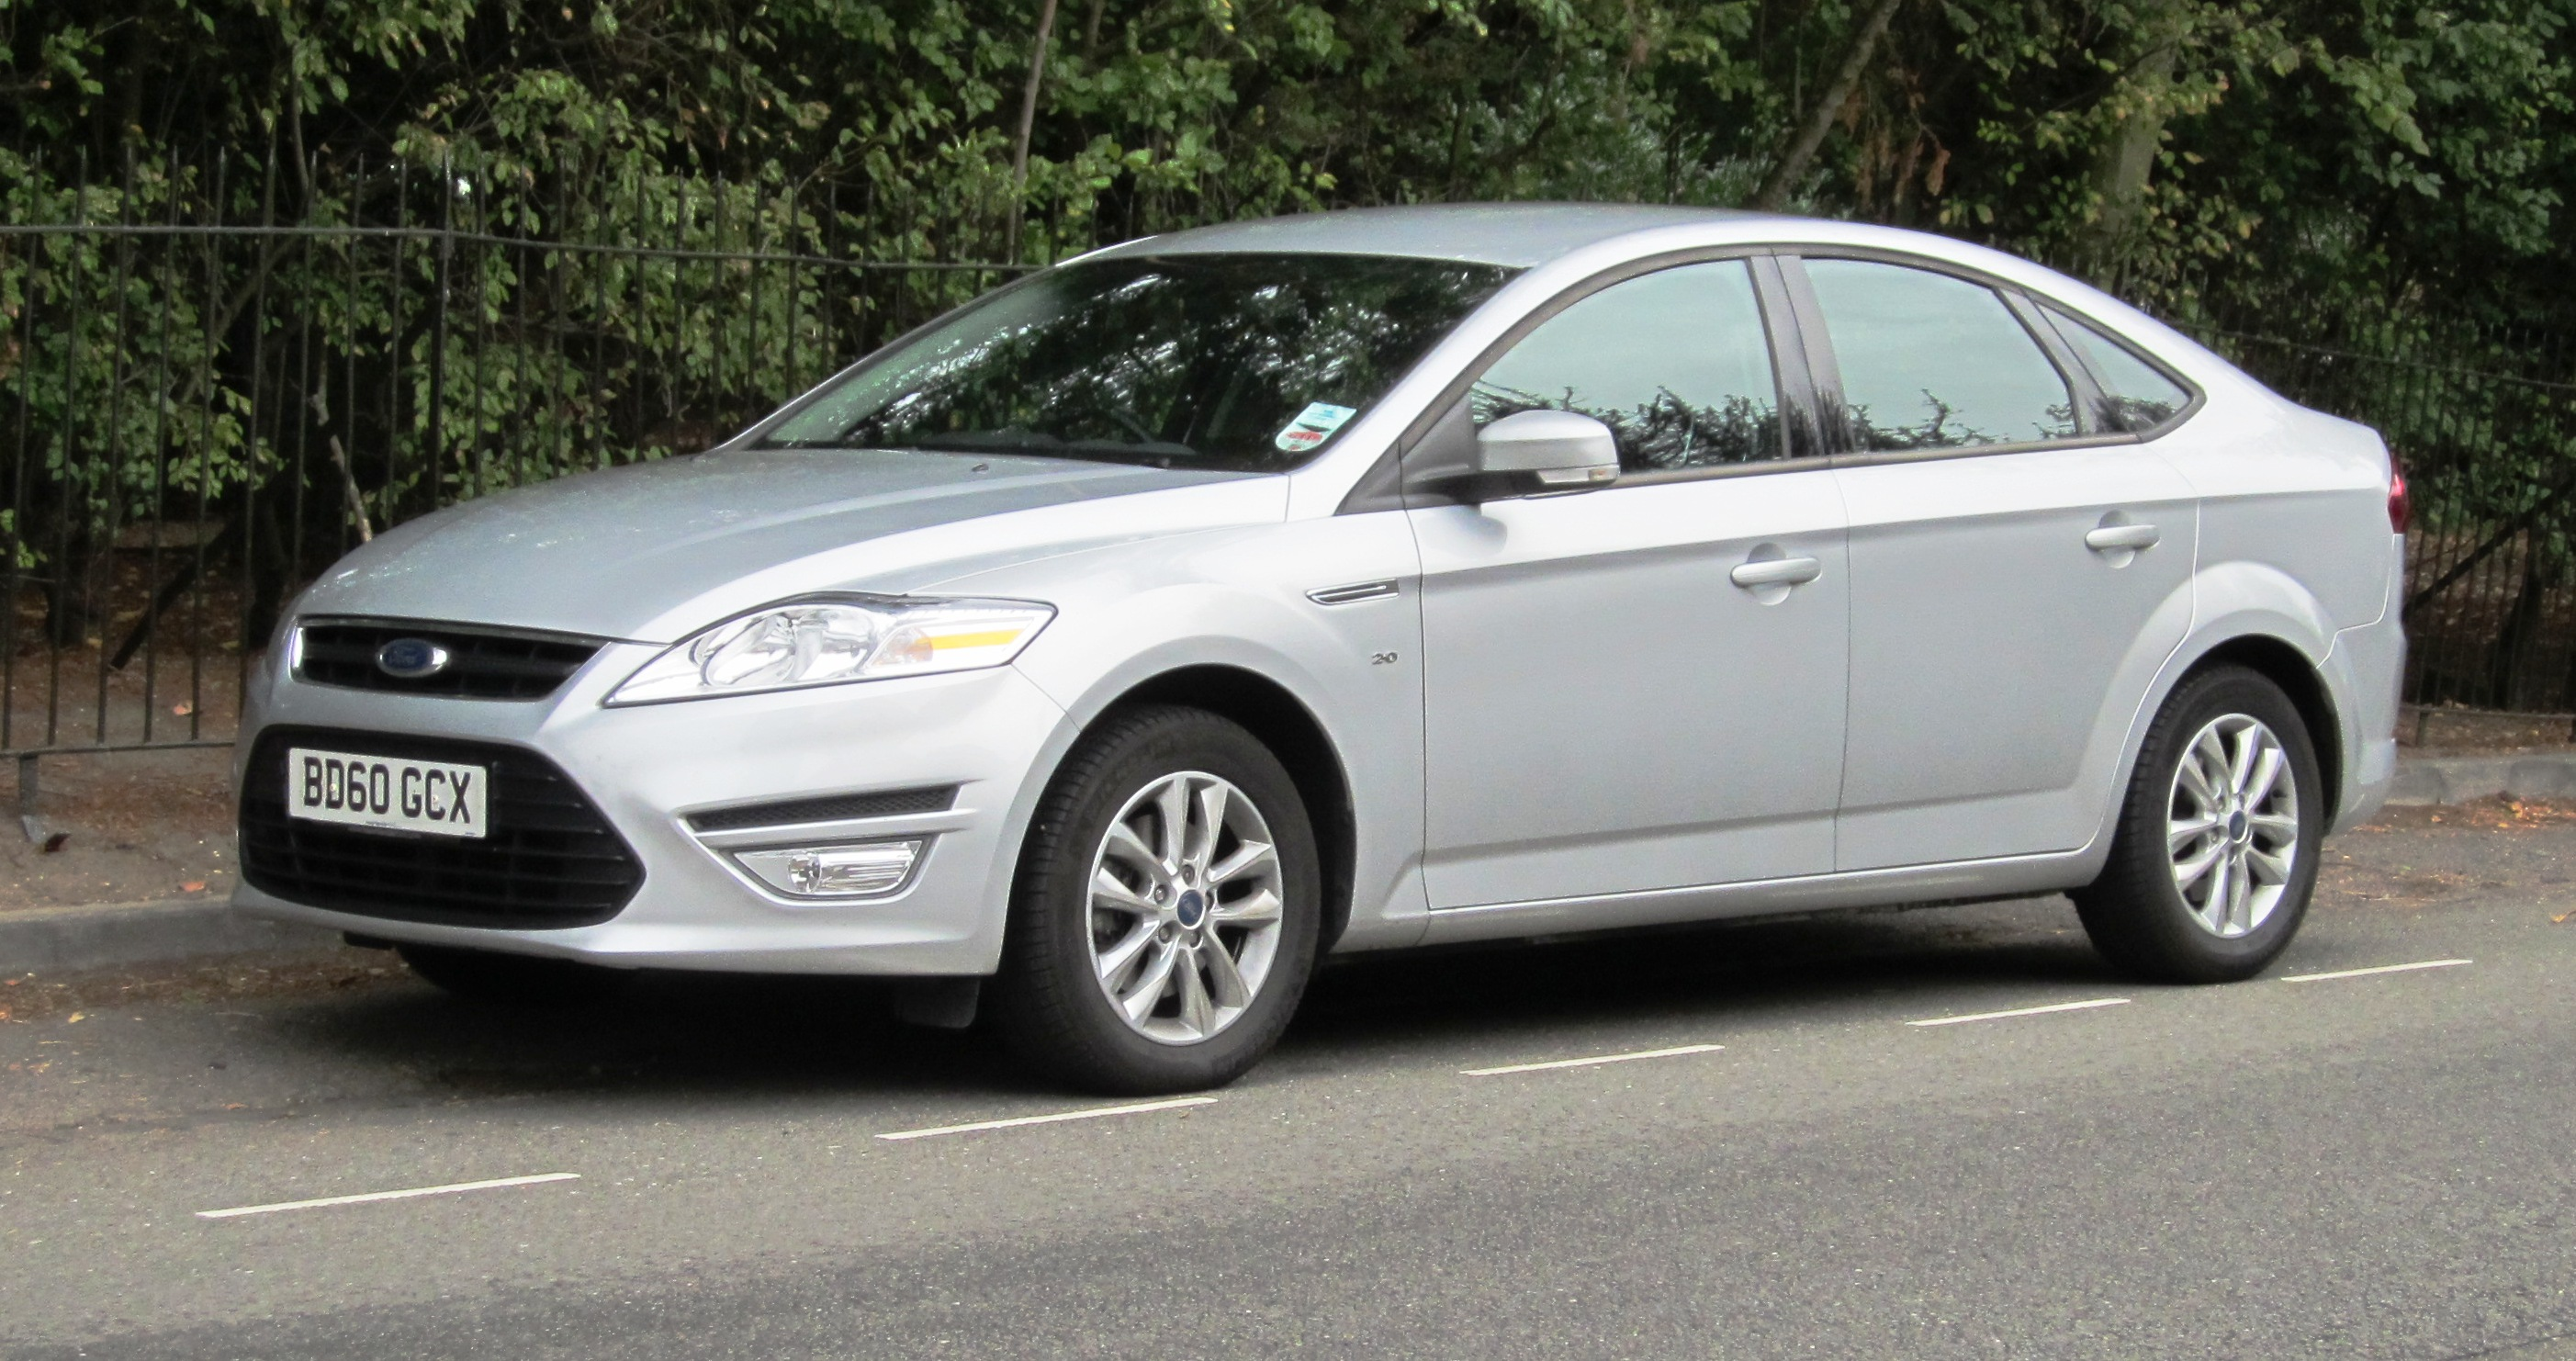 file ford mondeo reg dec 2010 west road cambridge 2011. Black Bedroom Furniture Sets. Home Design Ideas